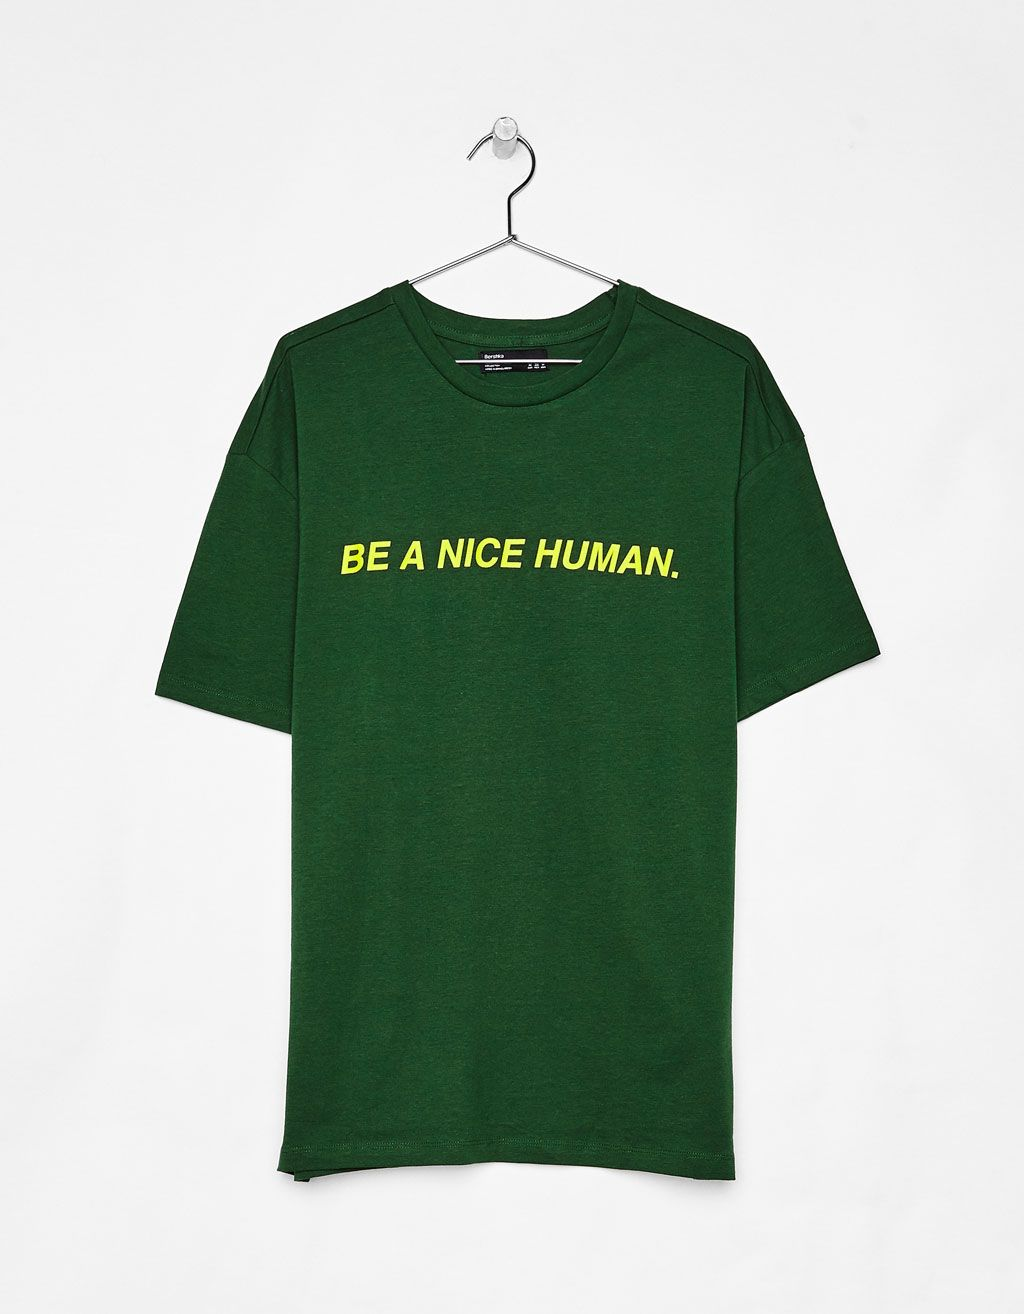 5327492ac T-shirt with slogan - Bershka  fashion  trend  green  tshirt  print   lettering  nice  human  boy  trend  trendy